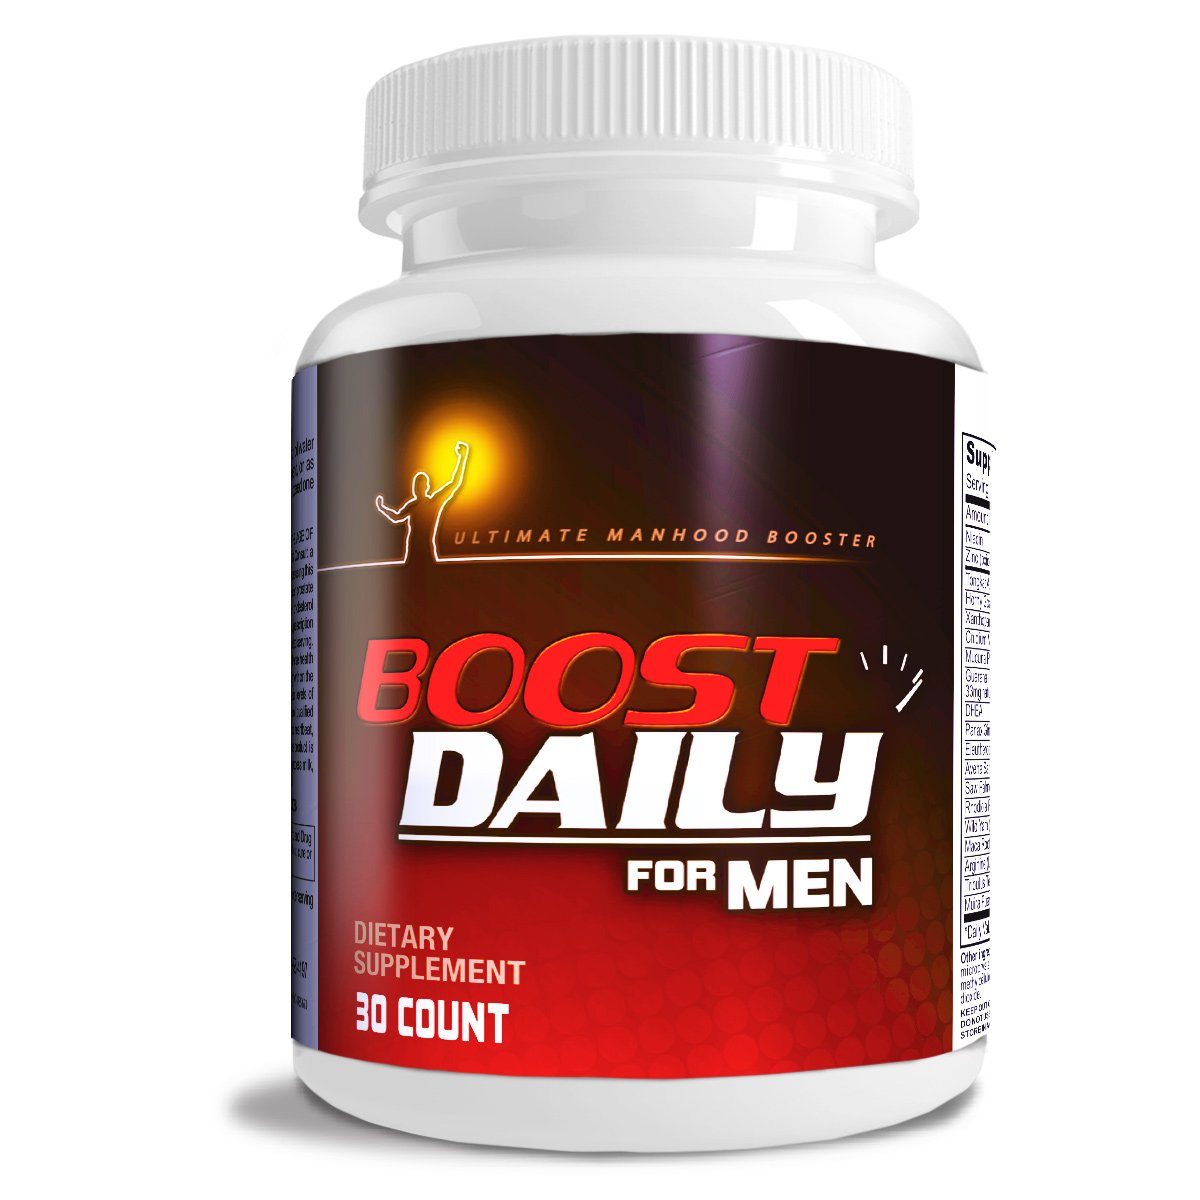 Boost Daily For Men COMPLETE Natural Male Health Formula MAXIMUM Male Health Support blend of natural ingredients in One Daily Male Health Supplement.